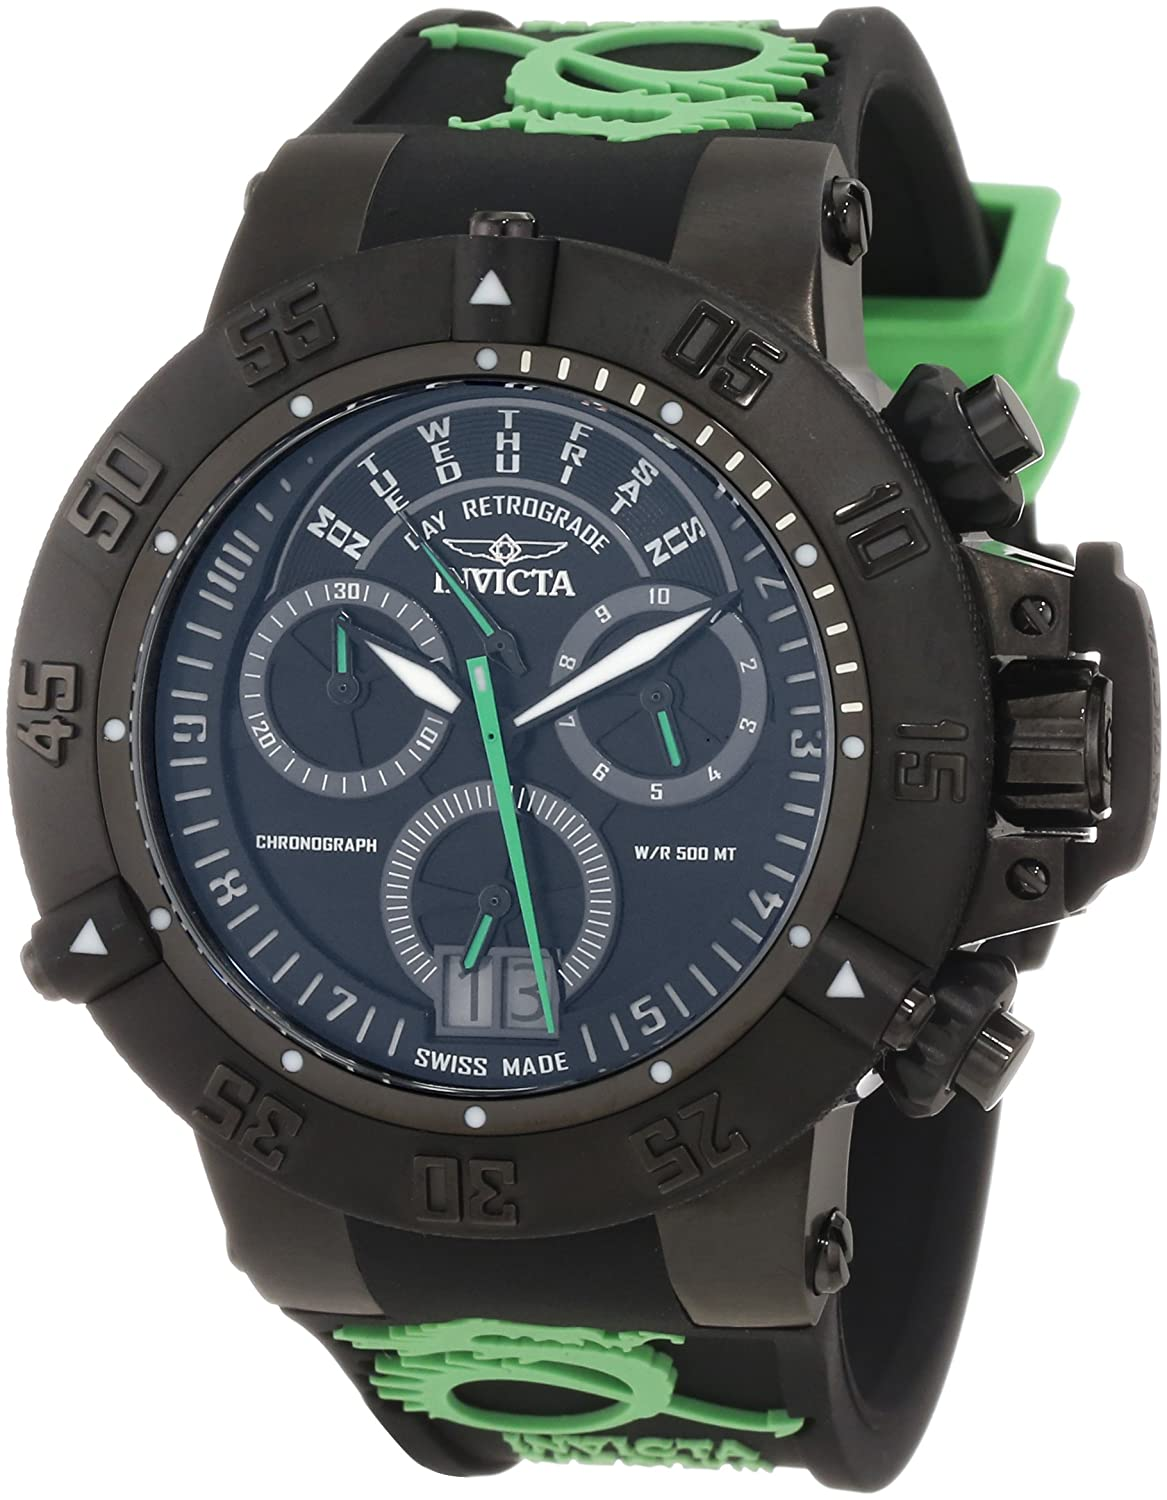 Amazon.com: Invicta Mens 10187 Subaqua Noma III Chronograph Black Dial Black and Green Silicone Watch: Invicta: Watches